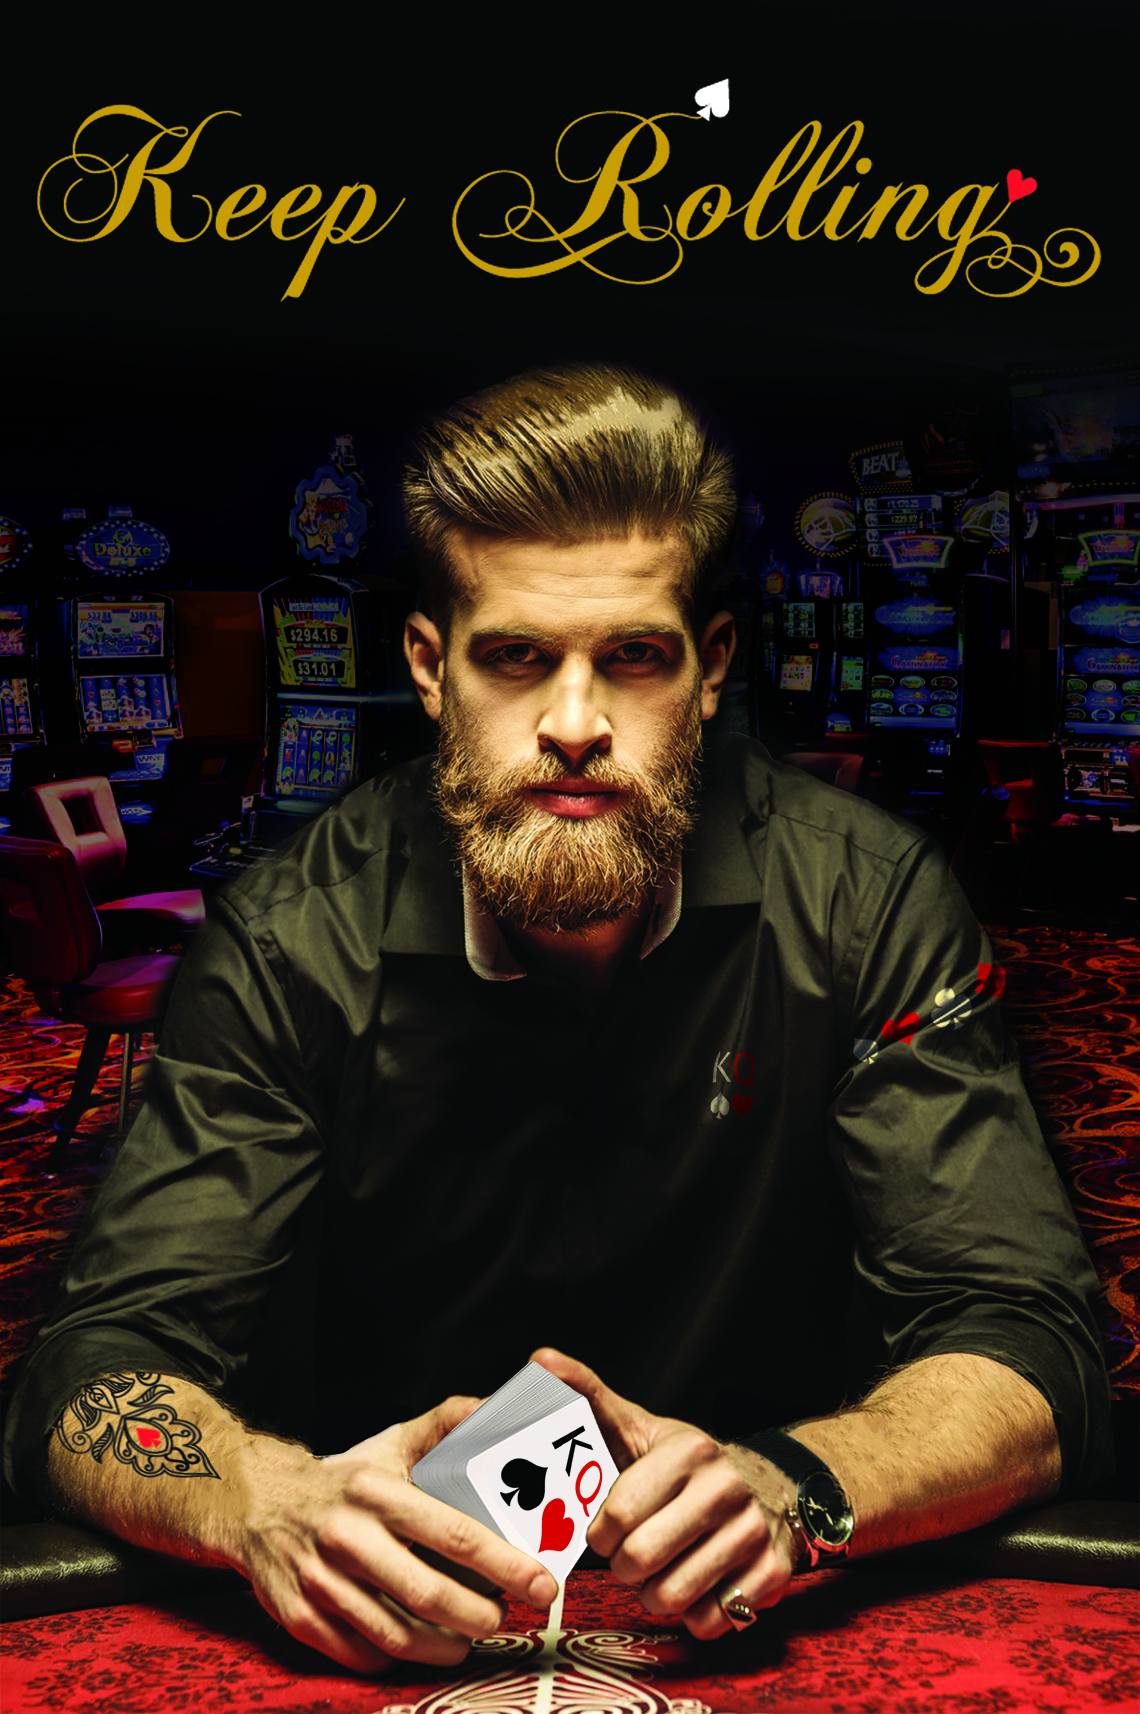 Serious bearded man sitting at poker table and holding smartphone